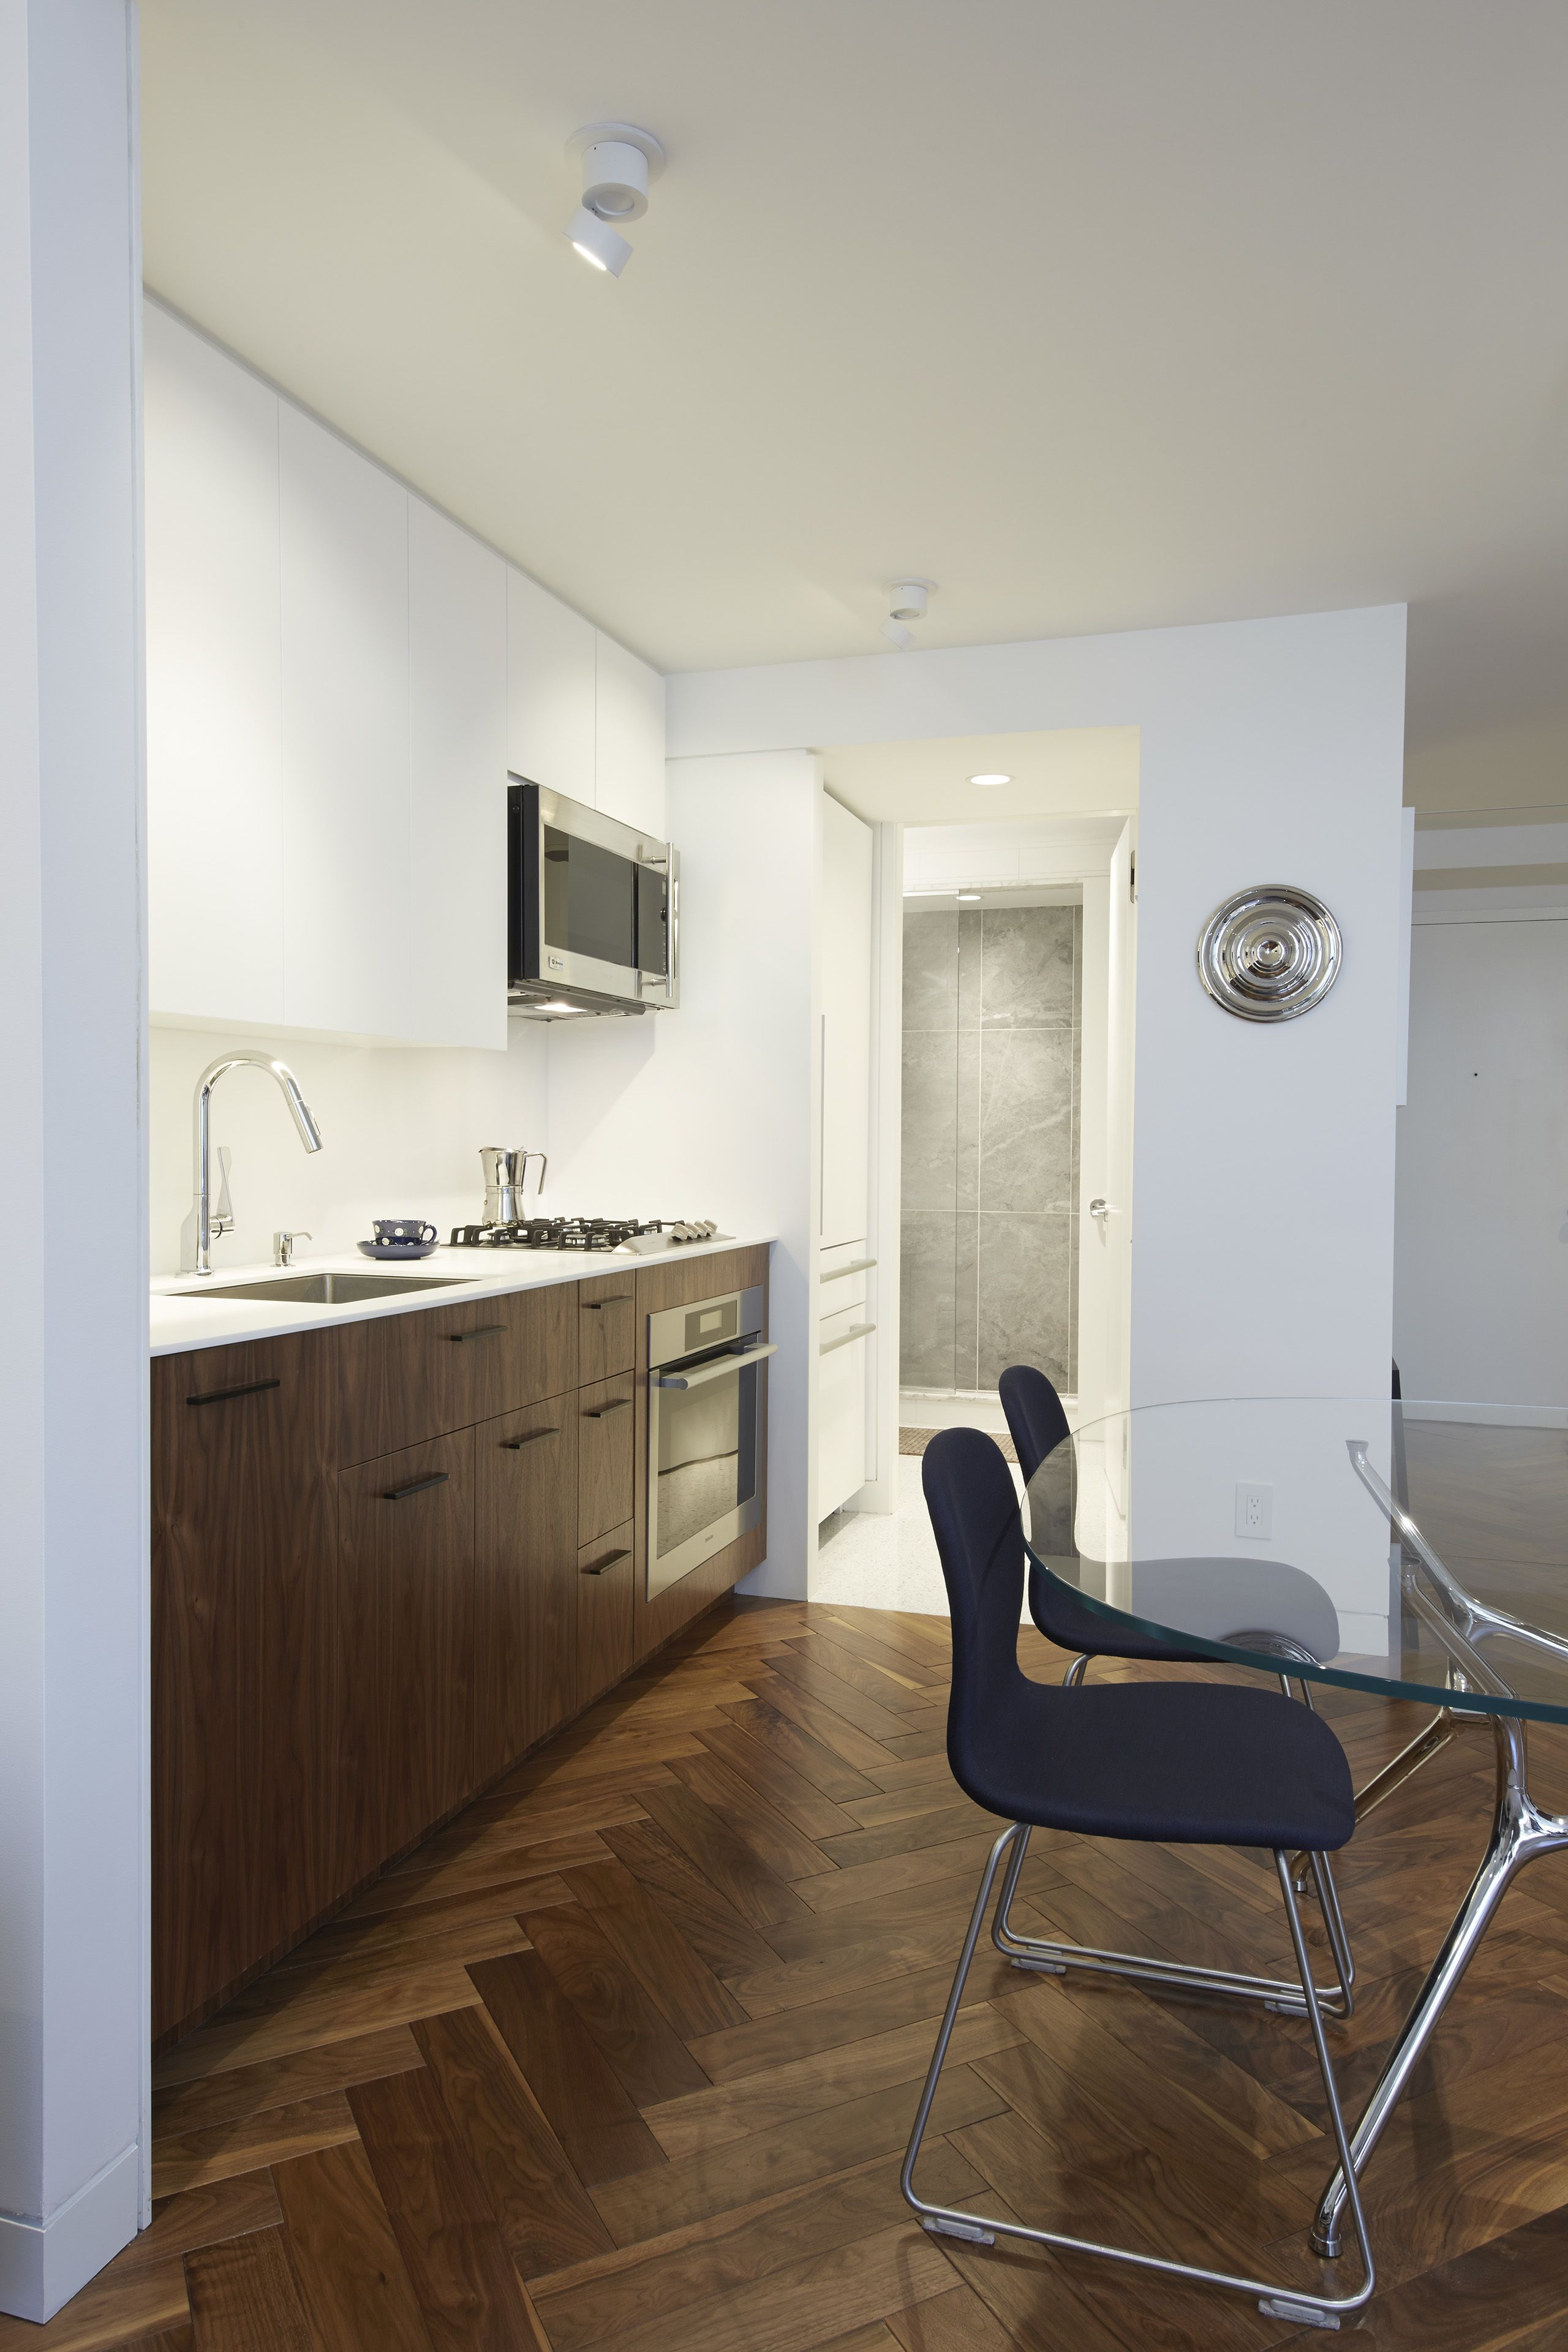 Photo 10 of 11 in In Just 450 Square Feet, A New York Architect ...